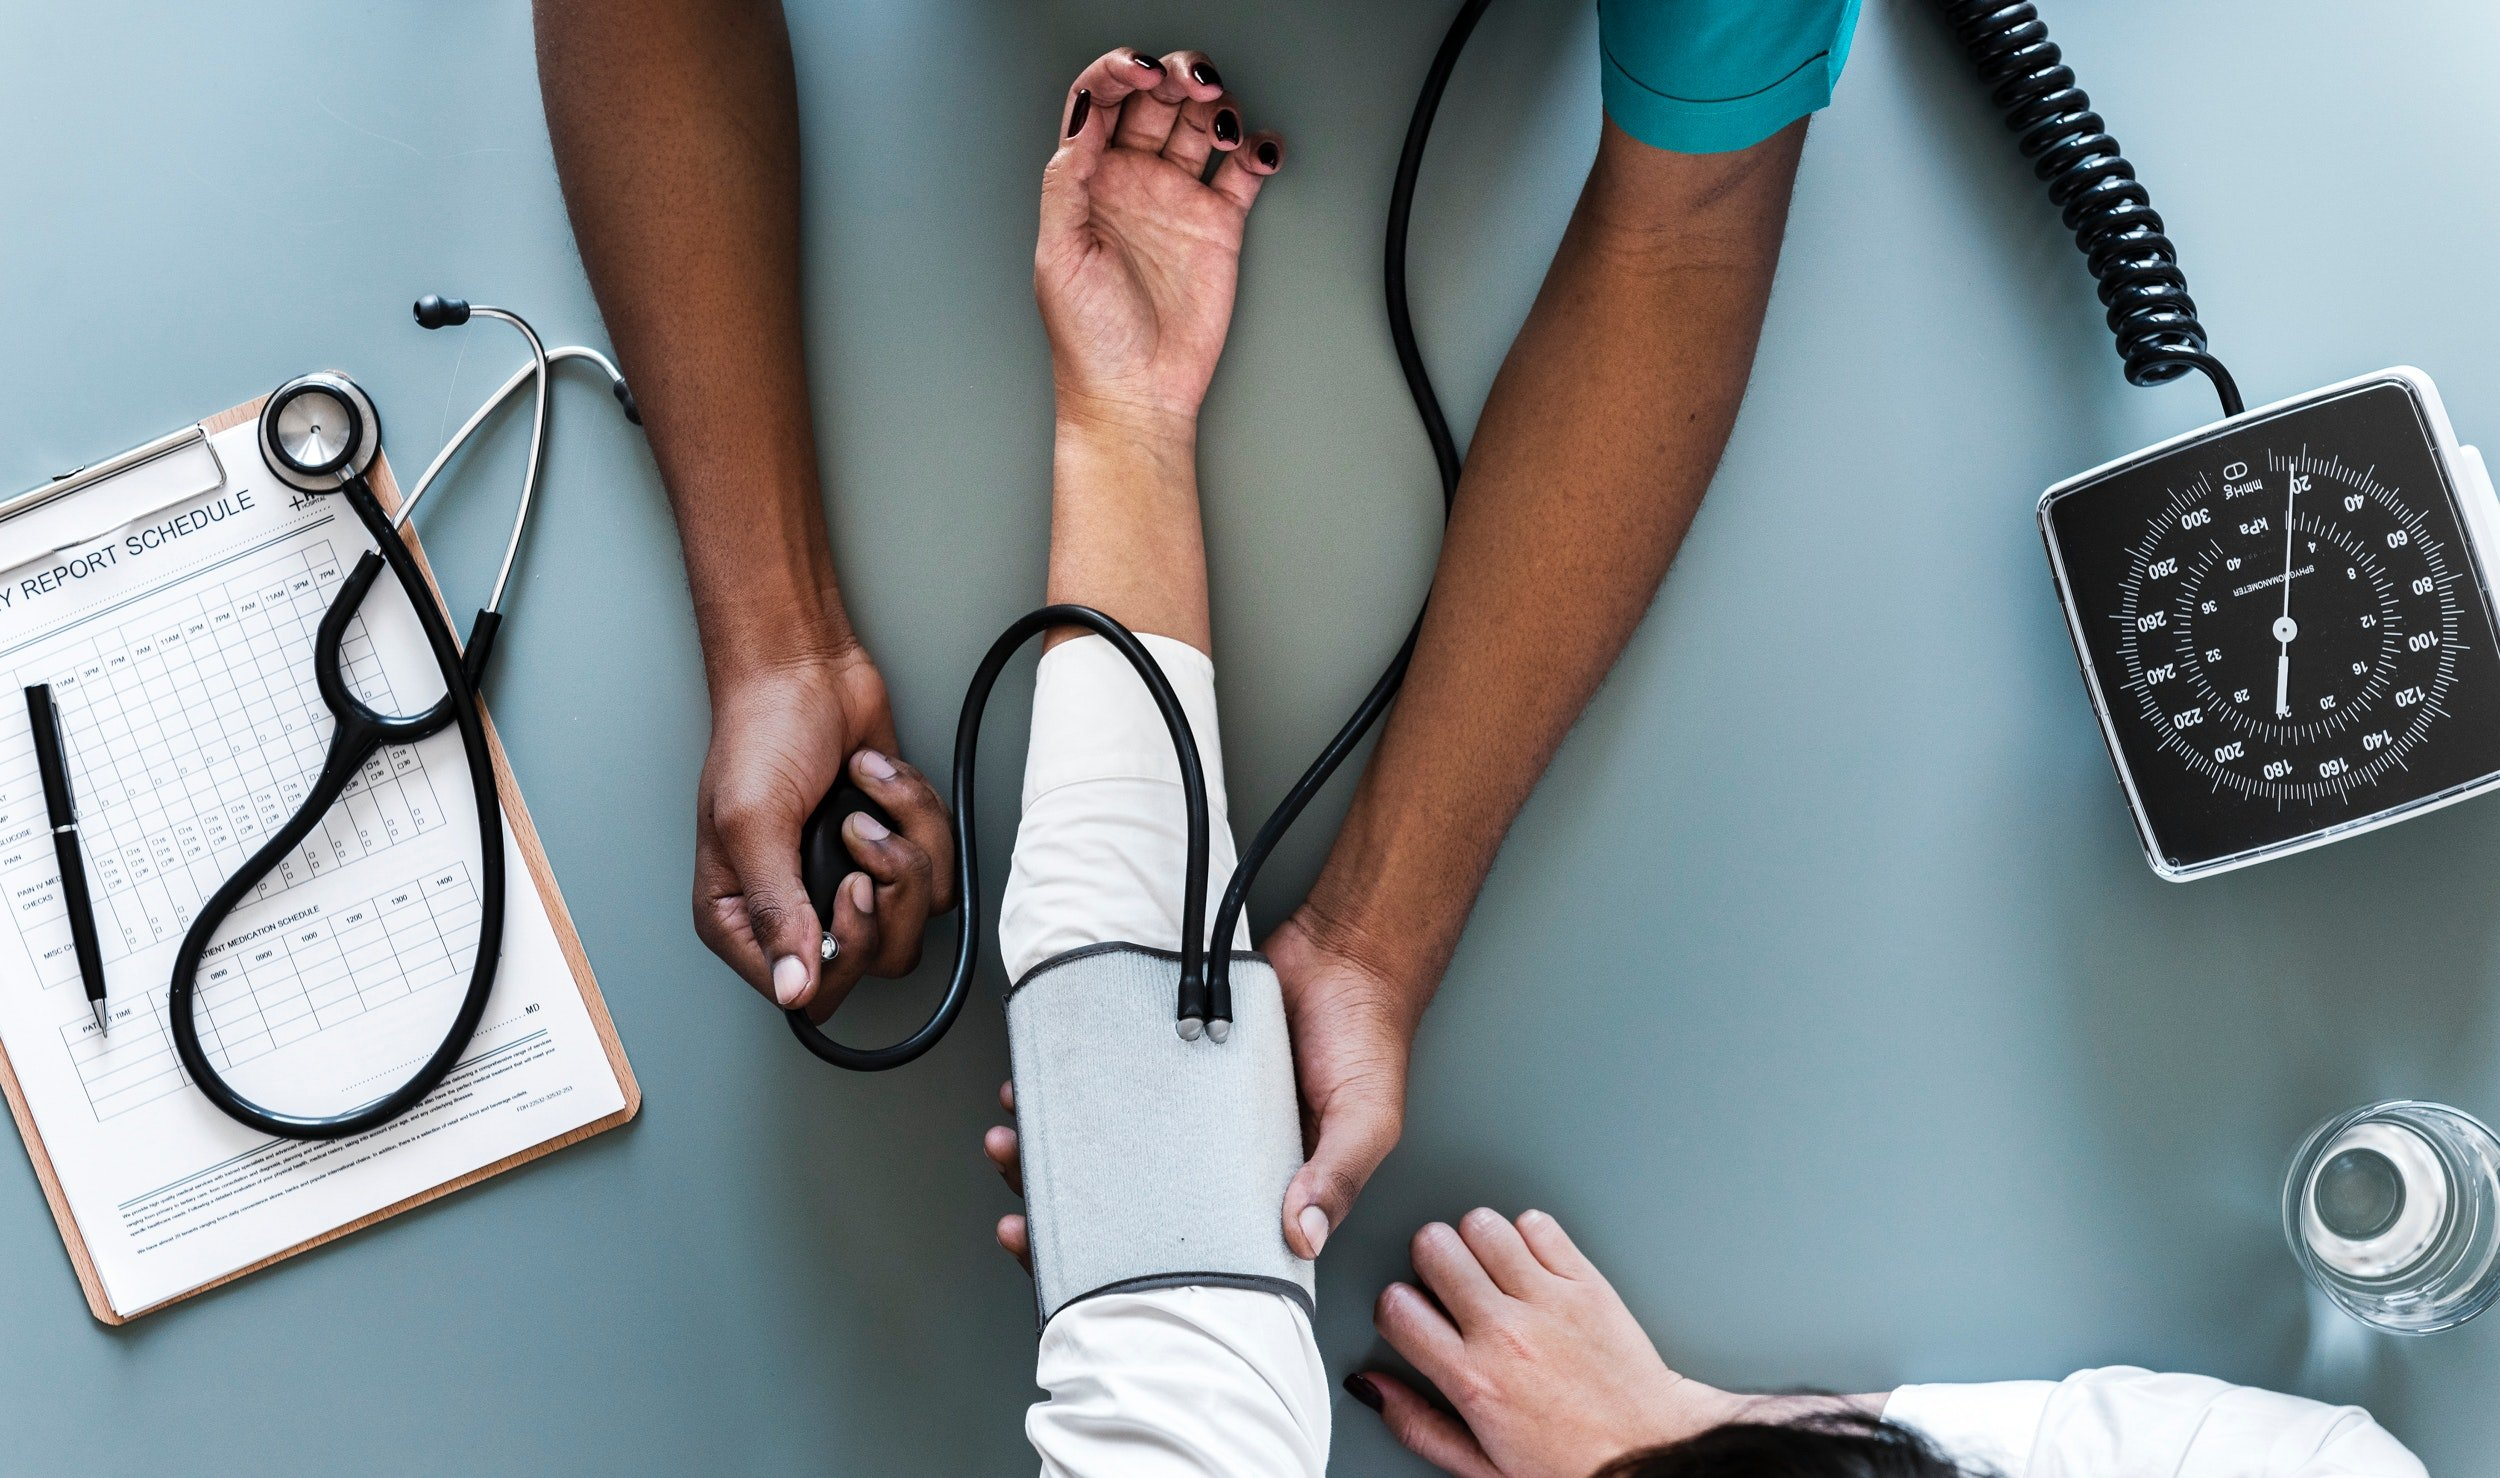 Health examination. | Source: Pexels